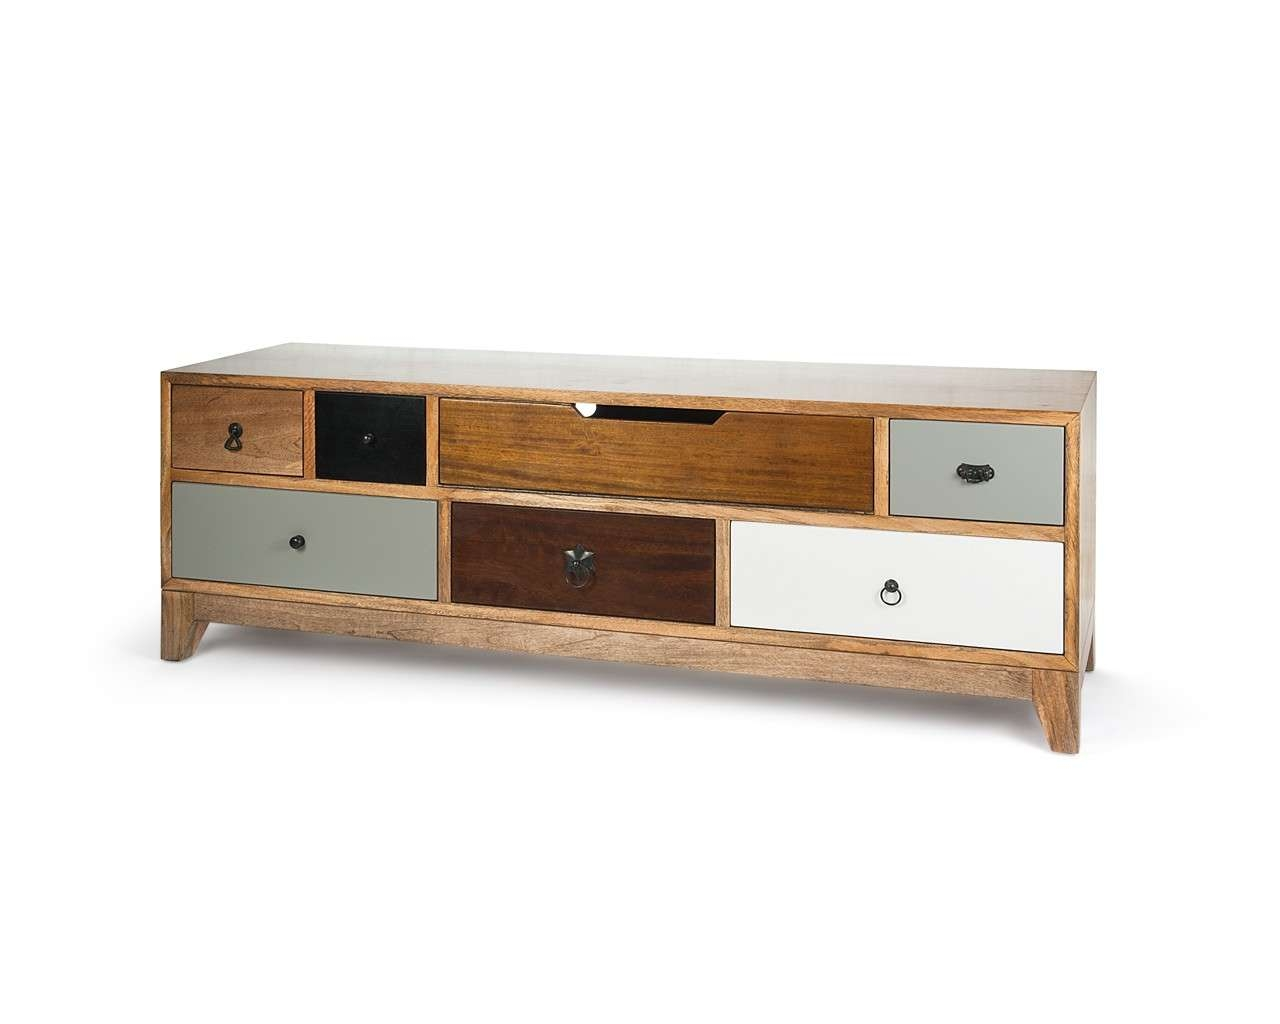 Artisan Tv Stand – Mango Wood Television Stand – Puji Furniture Pertaining To Mango Wood Tv Stands (View 6 of 15)